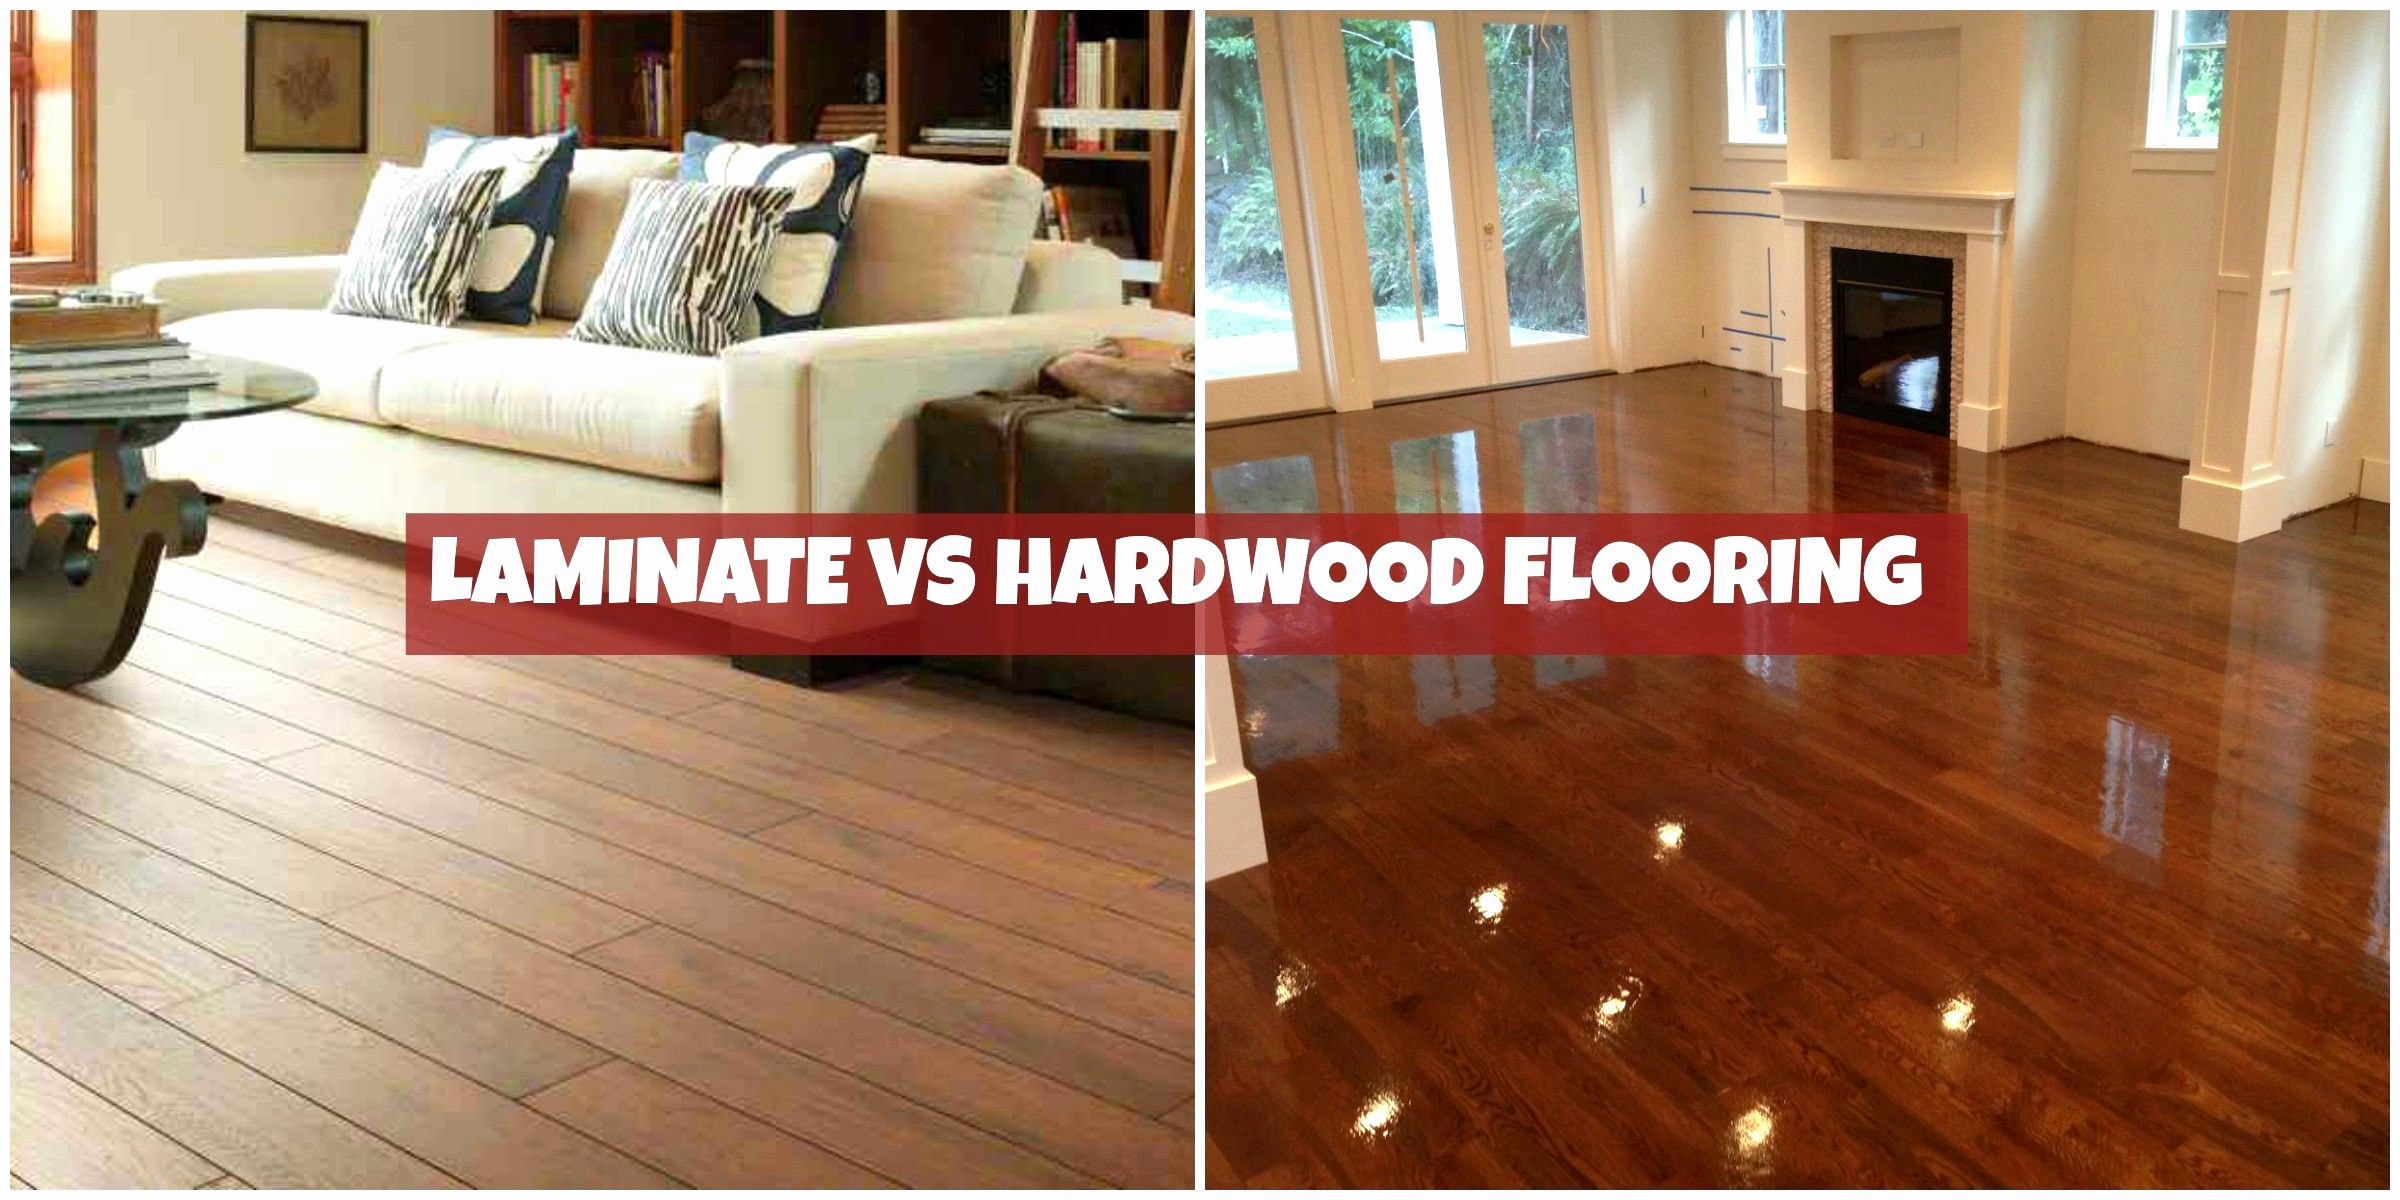 hardwood flooring price philippines of hardwood flooring prices unique 20 awesome how to restain hardwood within hardwood flooring prices unique 50 fresh ceramic tile vs hardwood flooring cost graphics 50 s